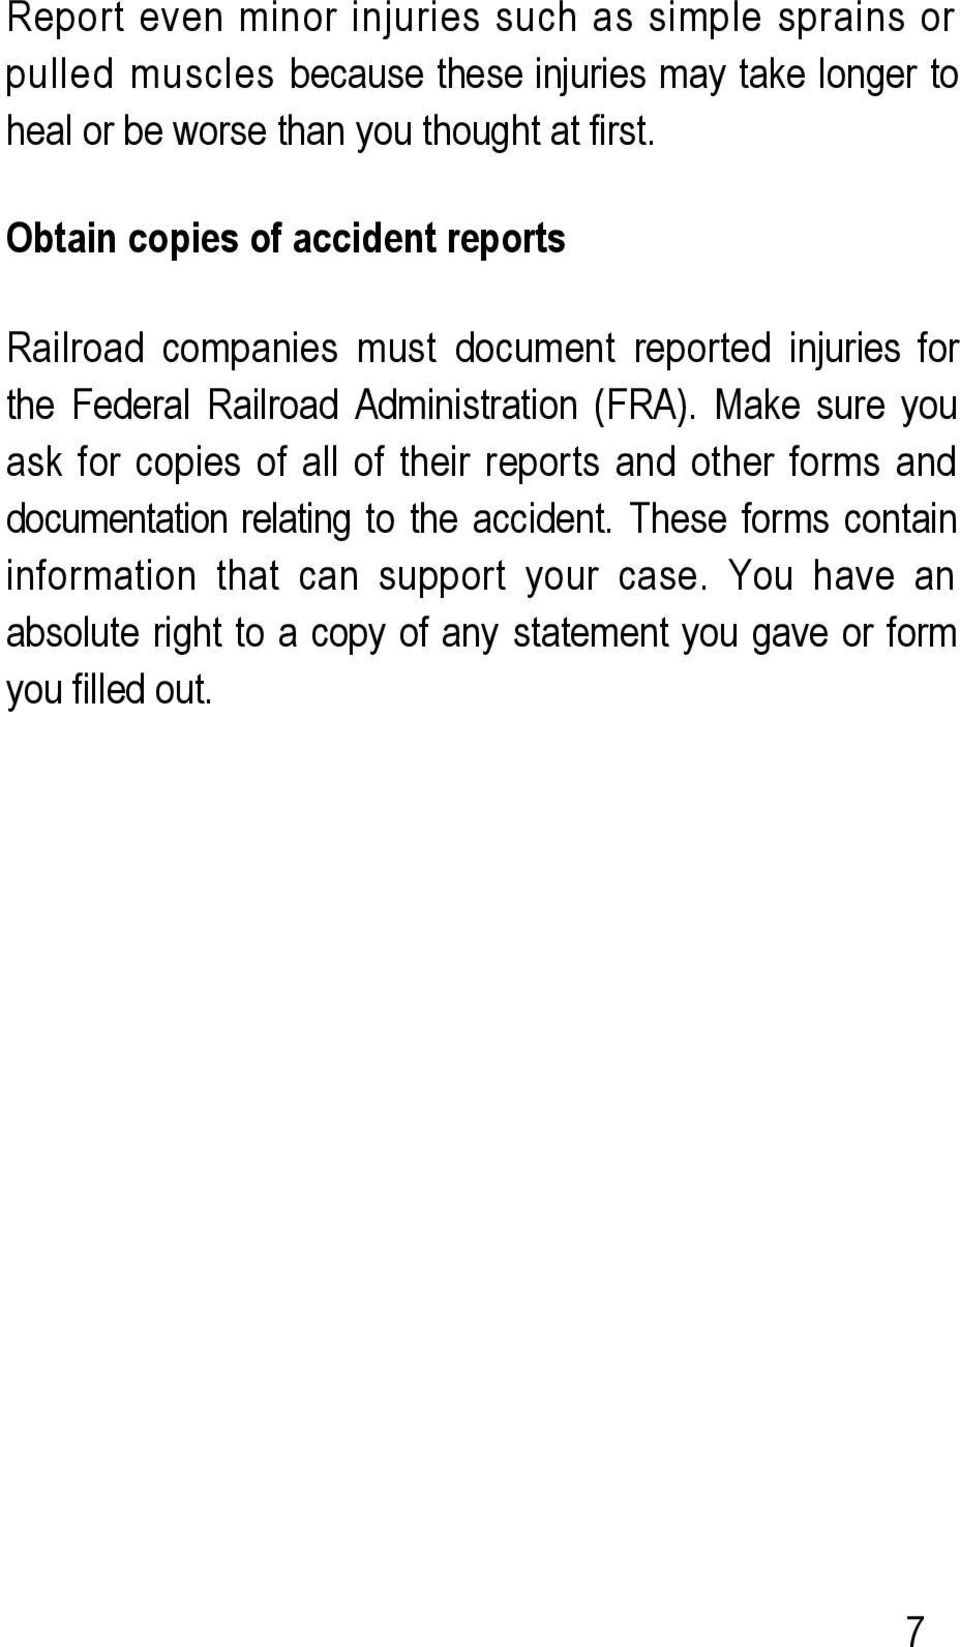 Obtain copies of accident reports Railroad companies must document reported injuries for the Federal Railroad Administration (FRA).